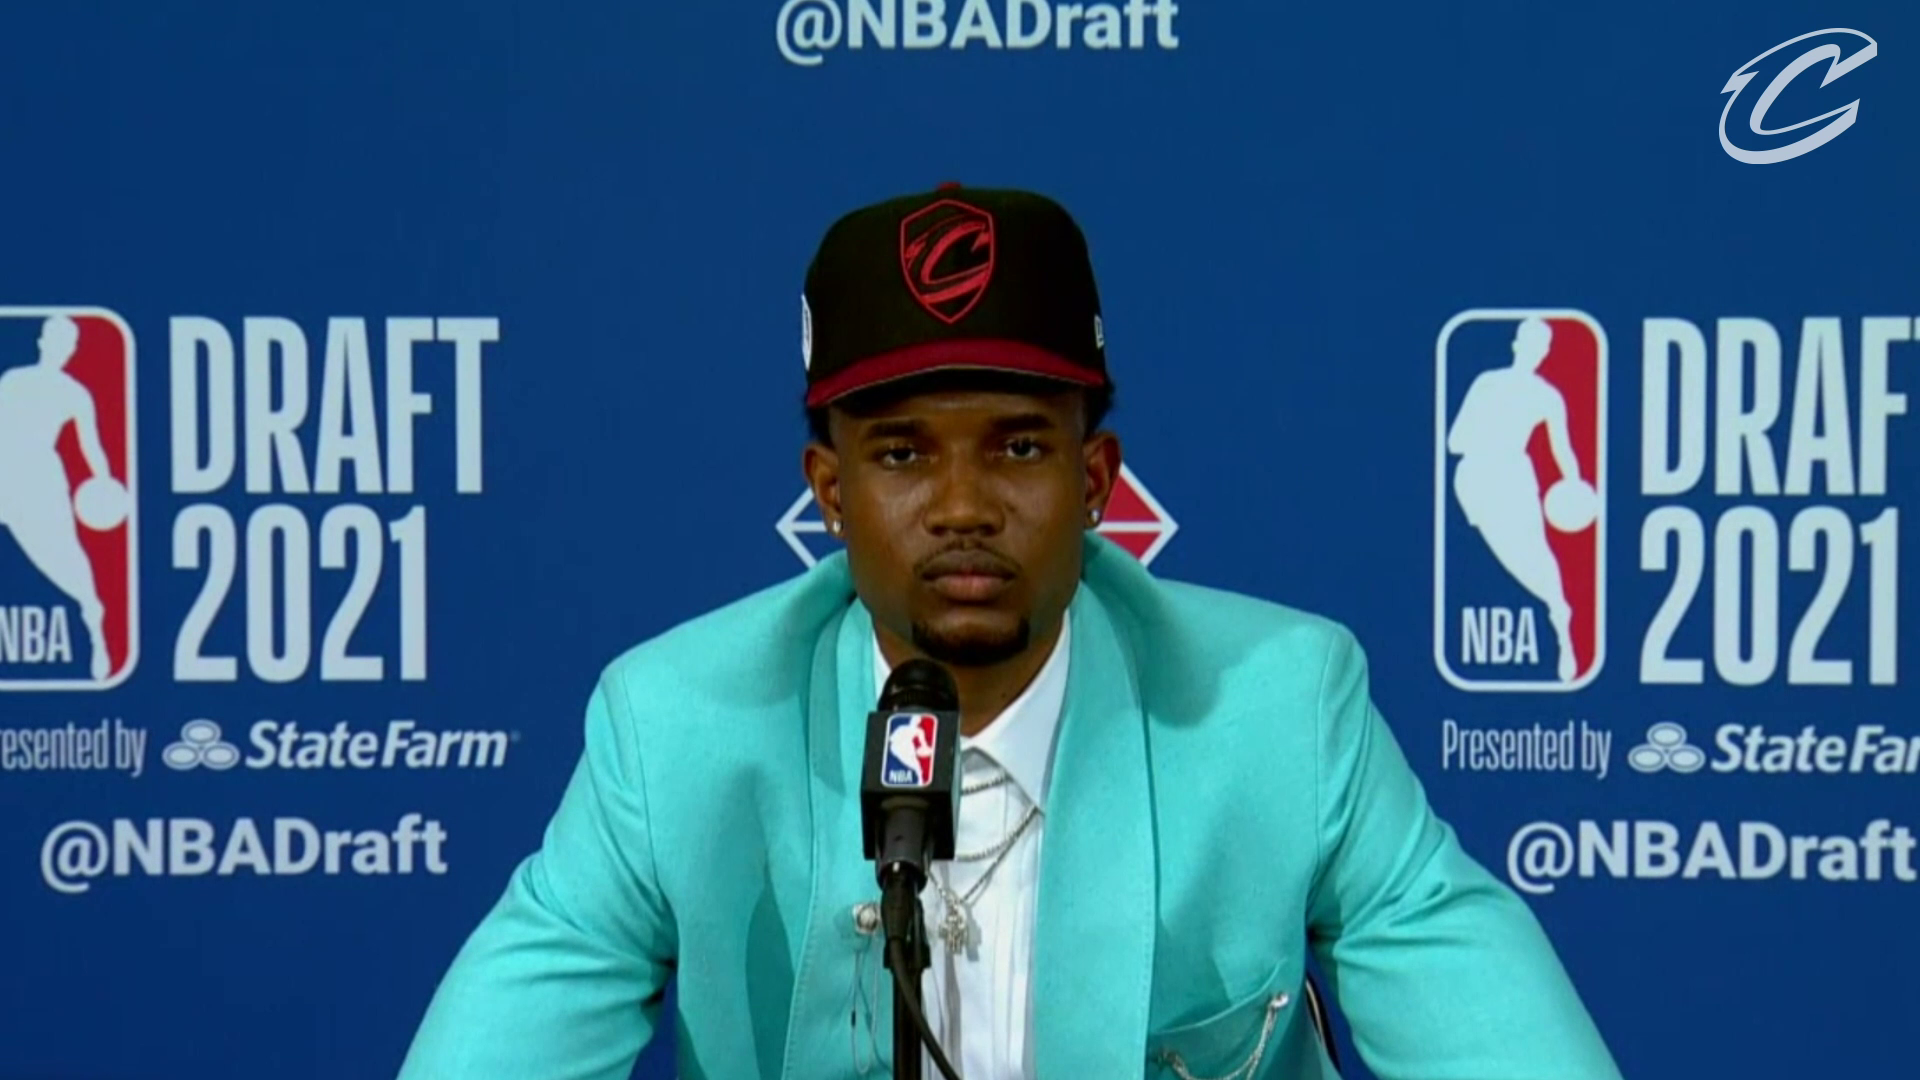 2021 Draft Interview with Evan Mobley